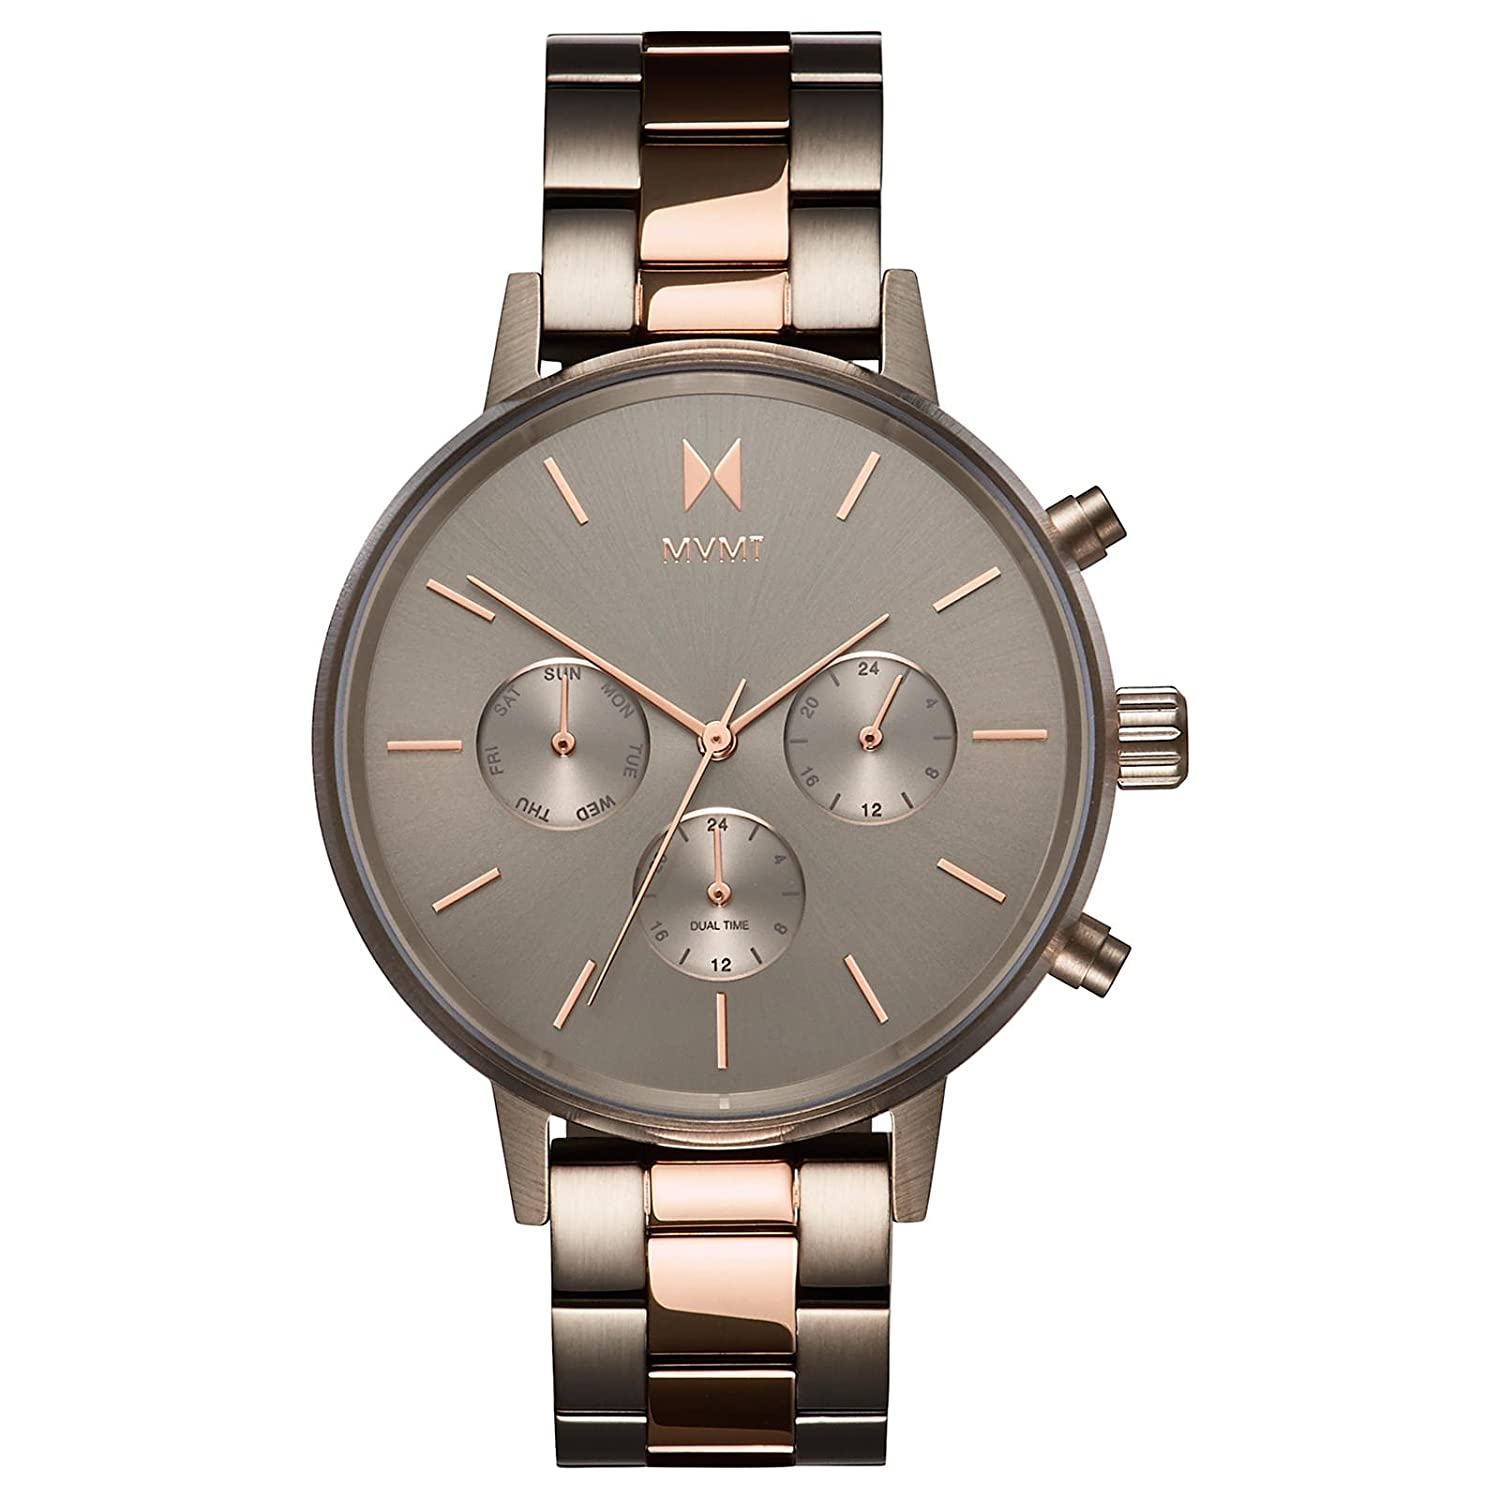 MVMT NOVA Watches 38MM Women s Analog Watch Chronograph